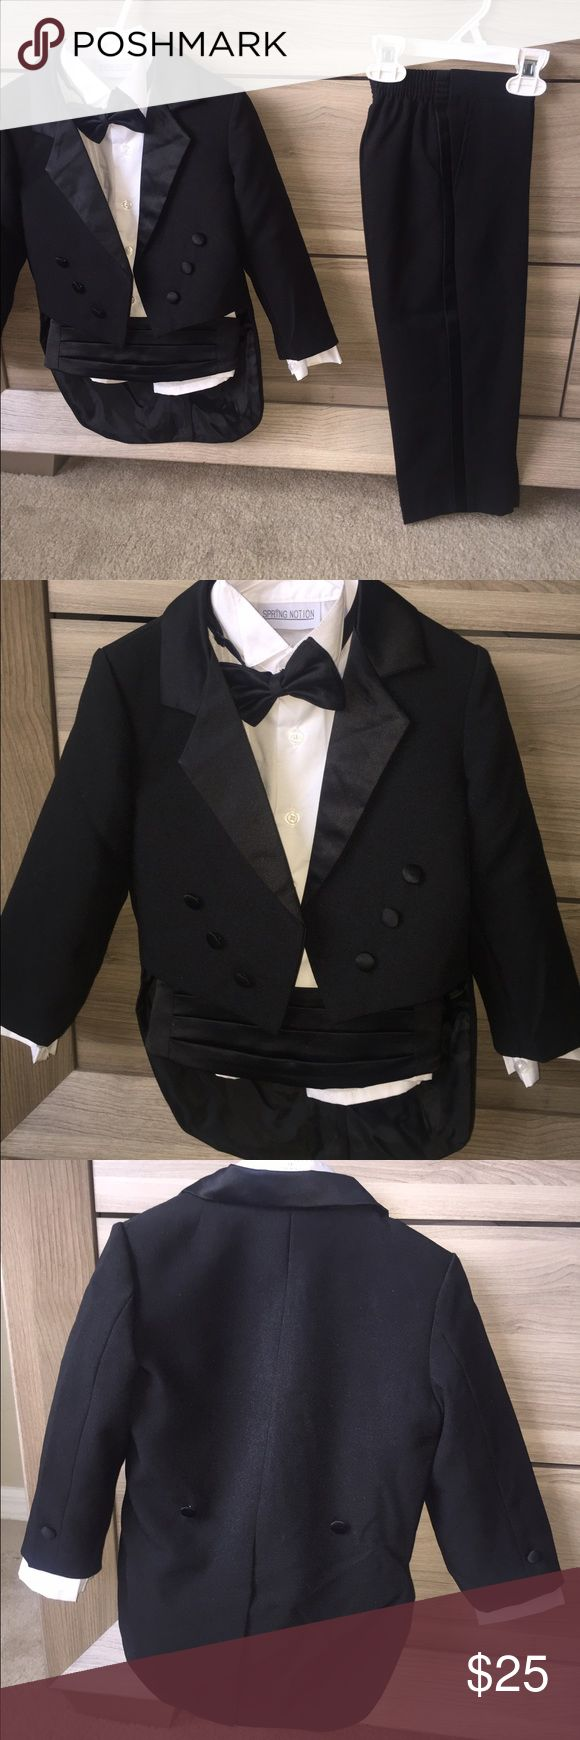 Baby Boys' Black Classic Tuxedo with Tail This traditional boys tuxedo suit is perfect for Weddings, Church, Baptism, and any Special Occasions. It's a complete set consists of tuxedo, shirt, bow tie, cummerbund and pants. Other